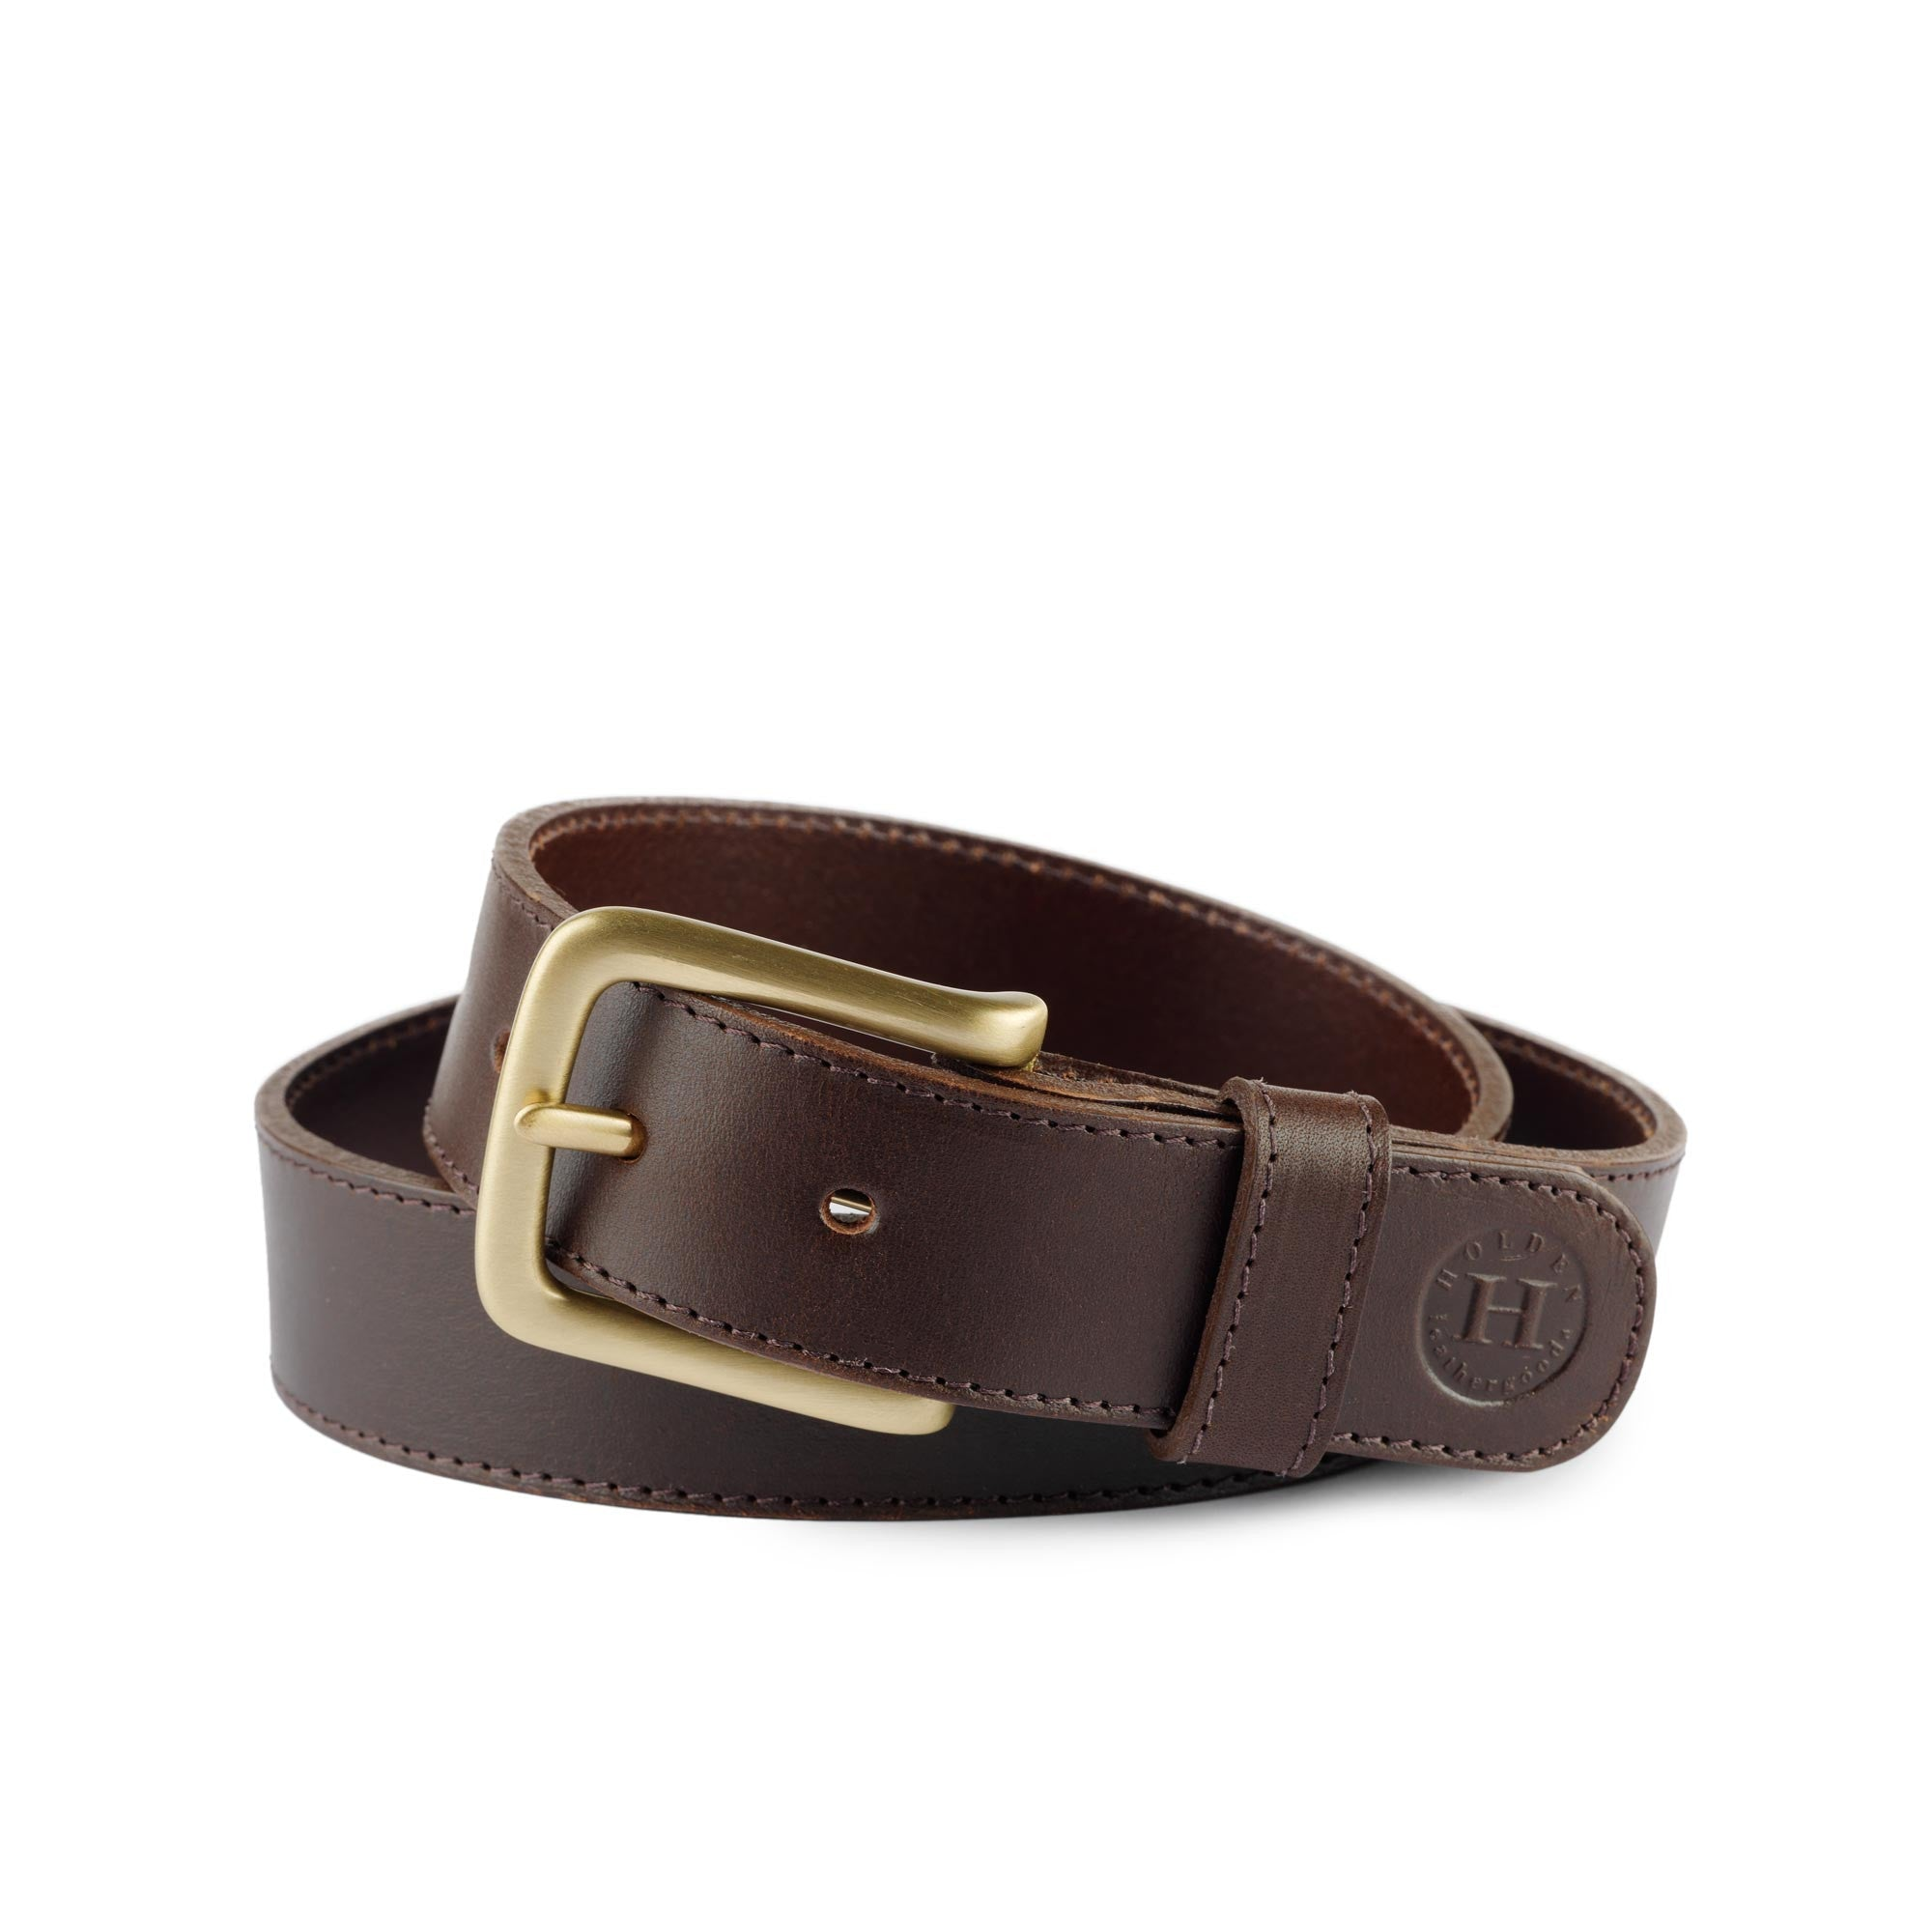 Holden Casual Leather Belt CB2 Brown - Holden Leathergoods, leather bags handmade in Ireland